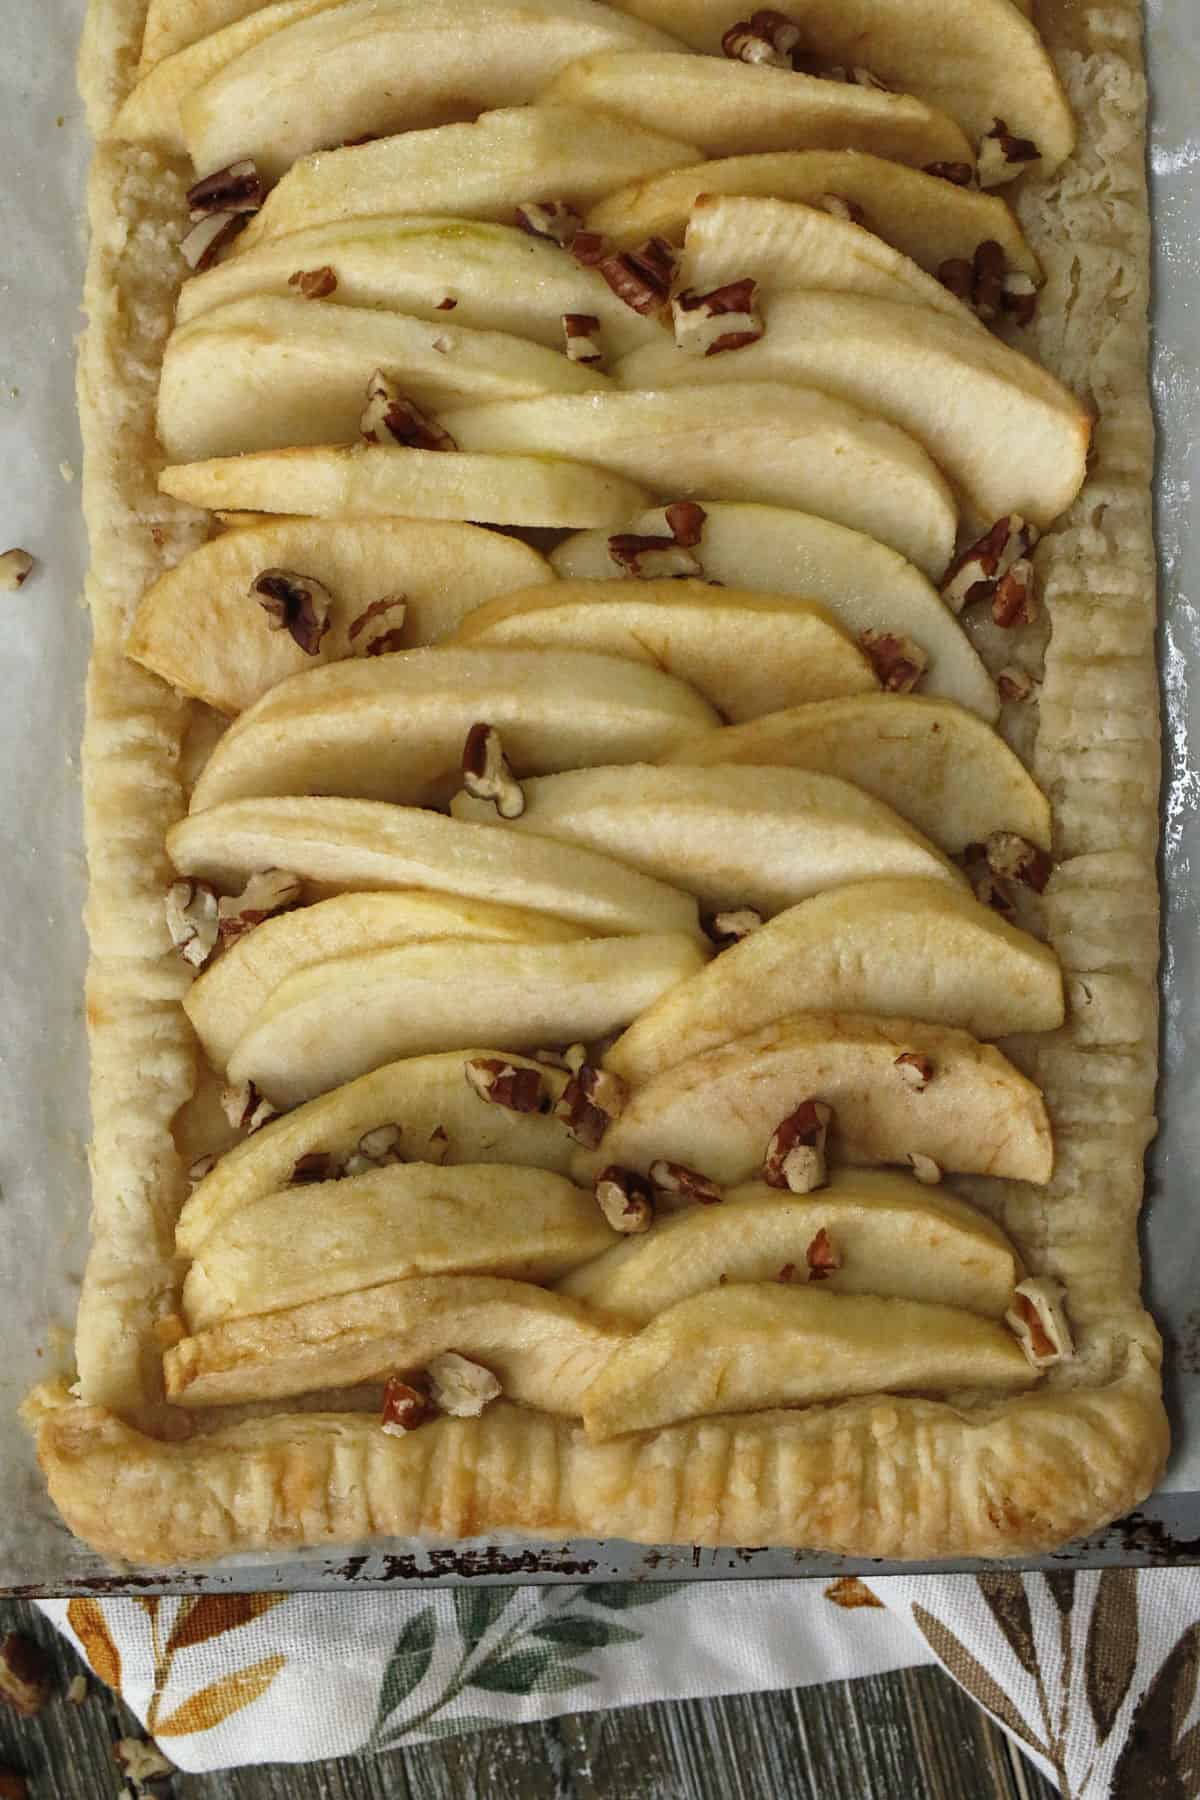 An apple tart with pecans.